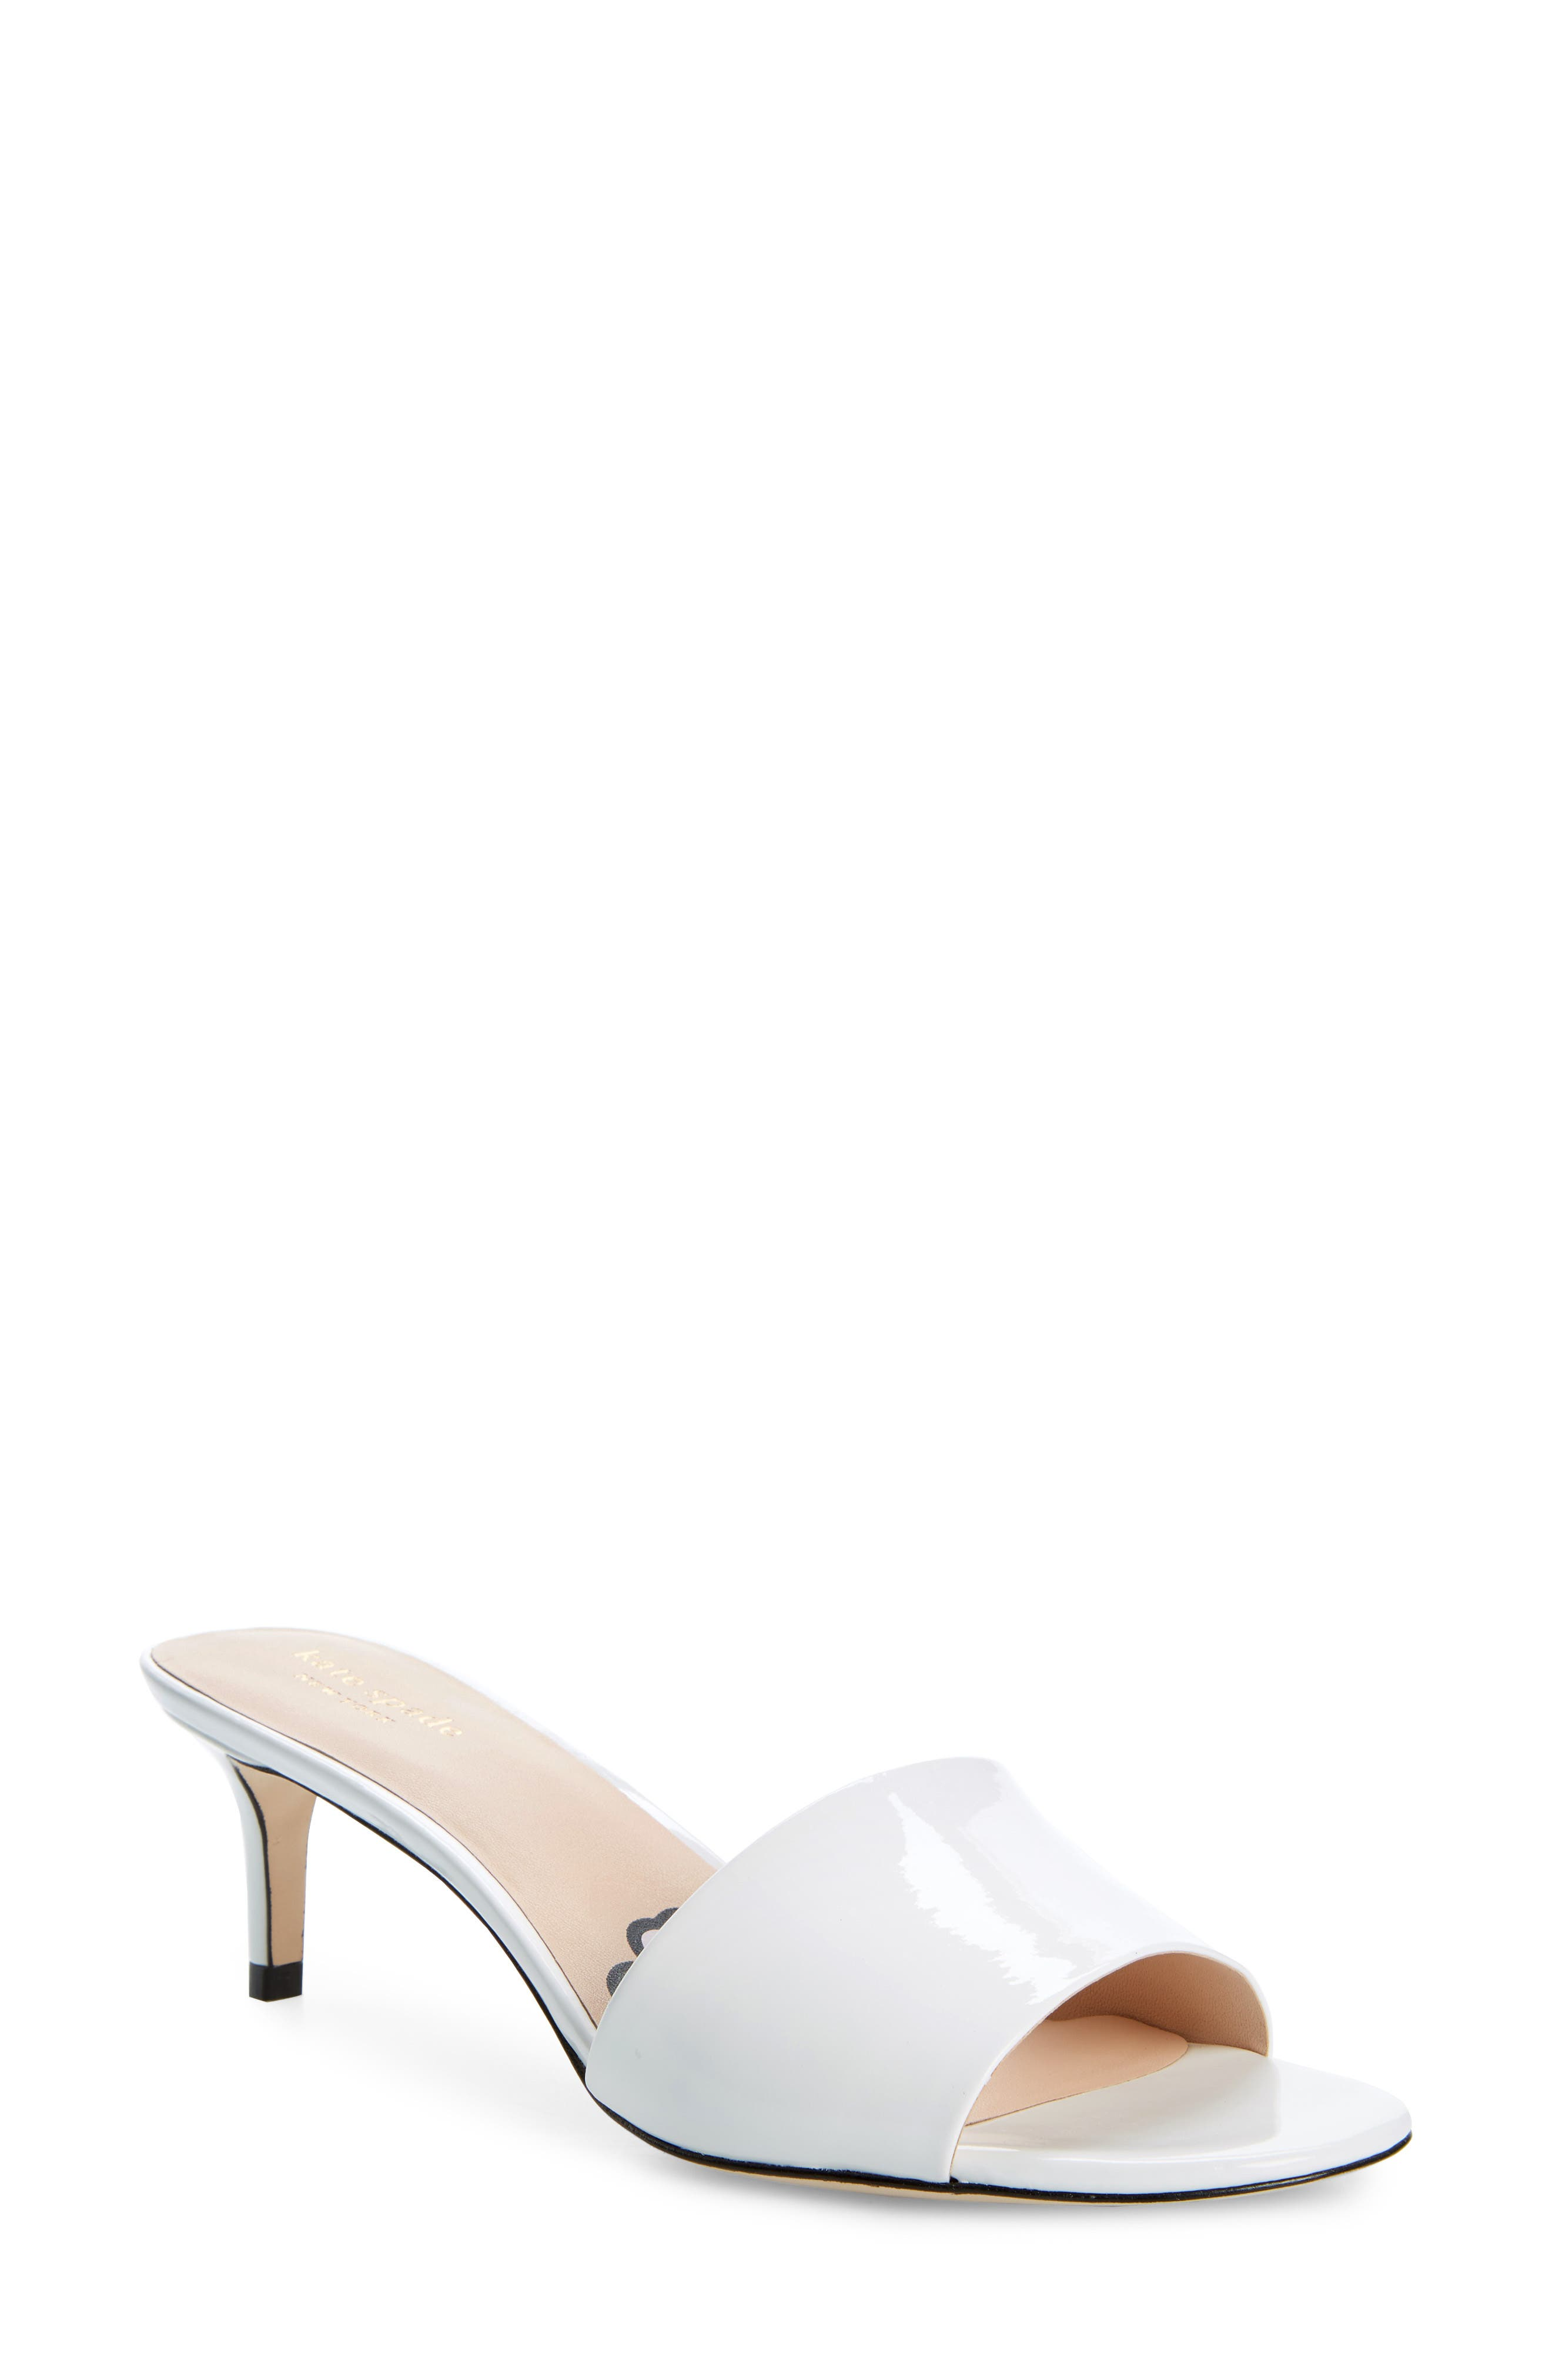 Spade York New Women's Kate ShoesNordstrom xBthQoCsrd